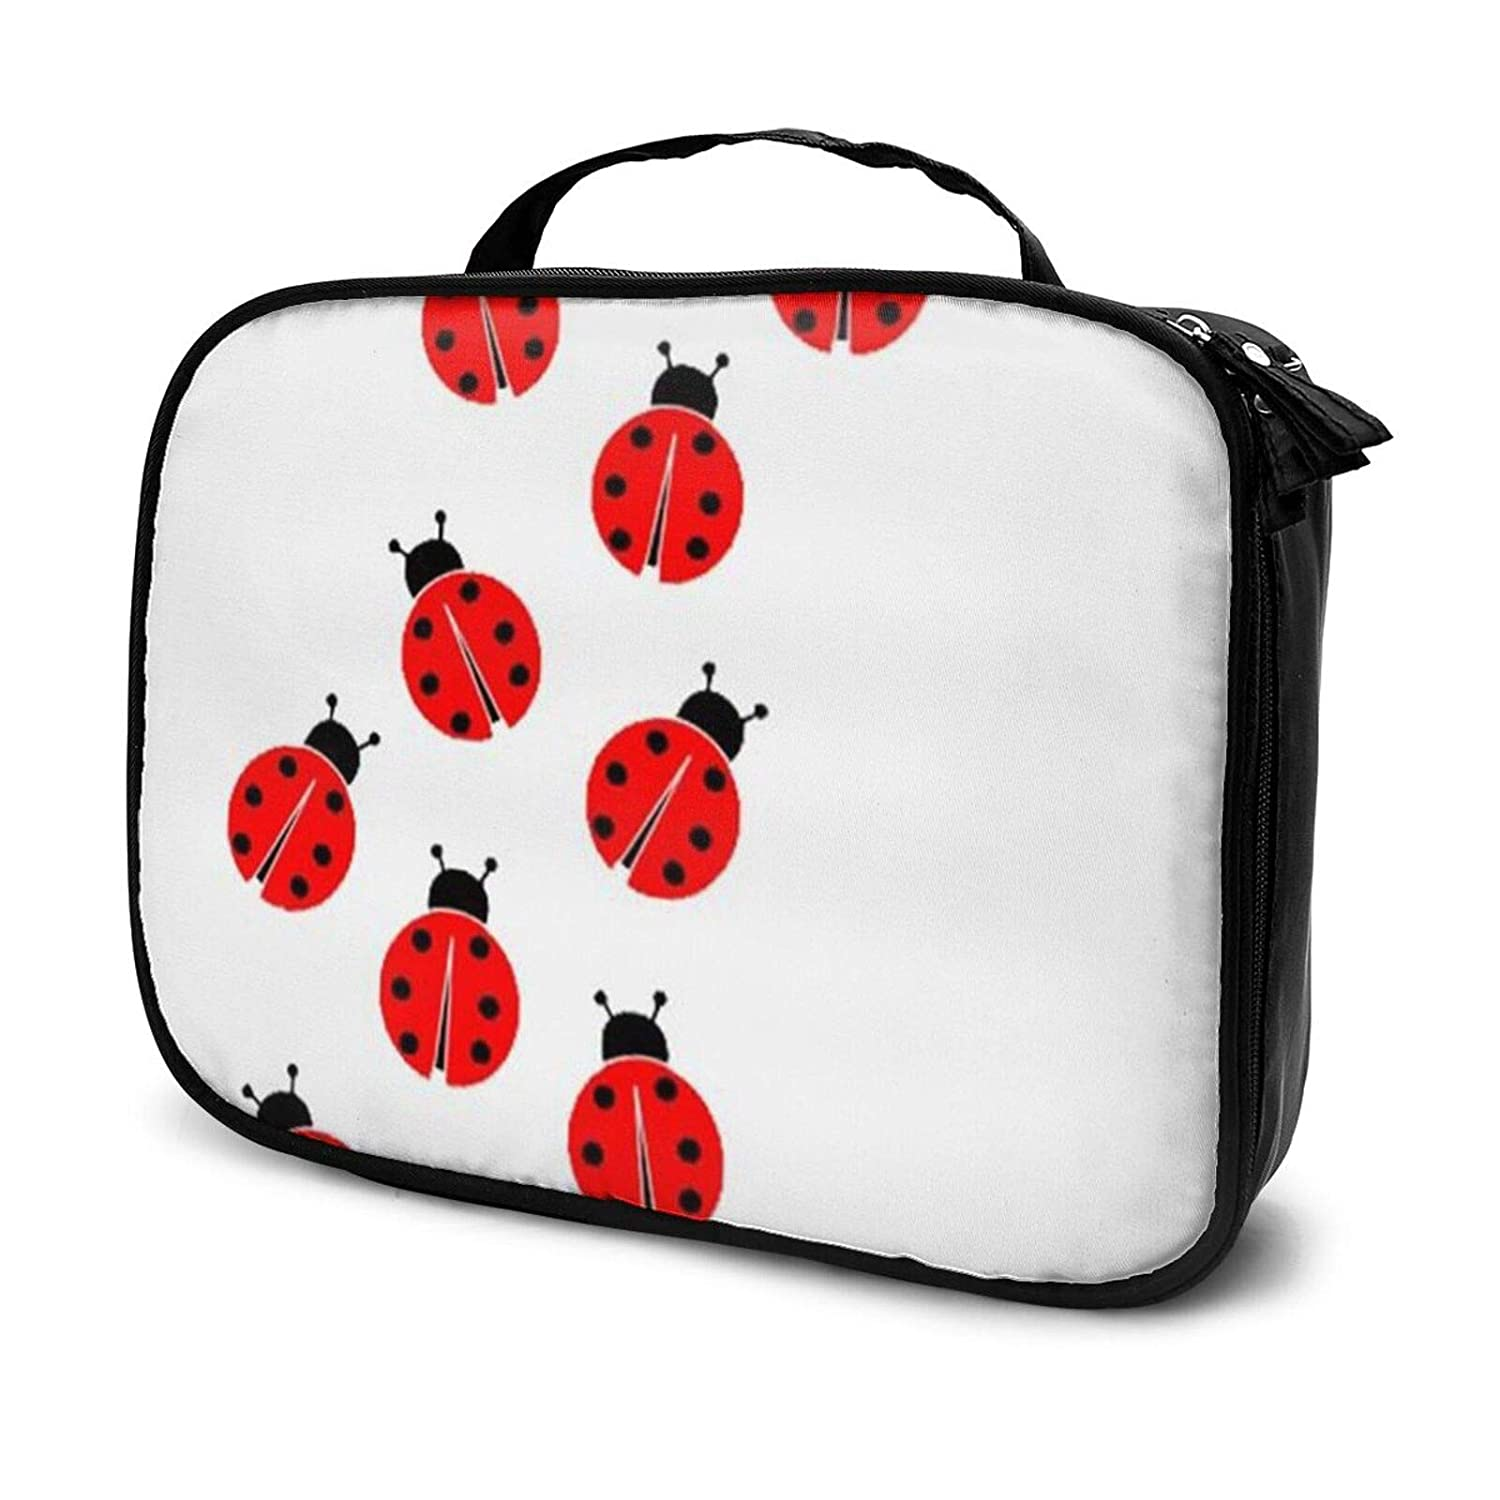 Ladybugs Cosmetics Bag, Large Makeup Bag,Toiletry Pouch Bag Zipper Pouch Travel Organizer For Women And Girls